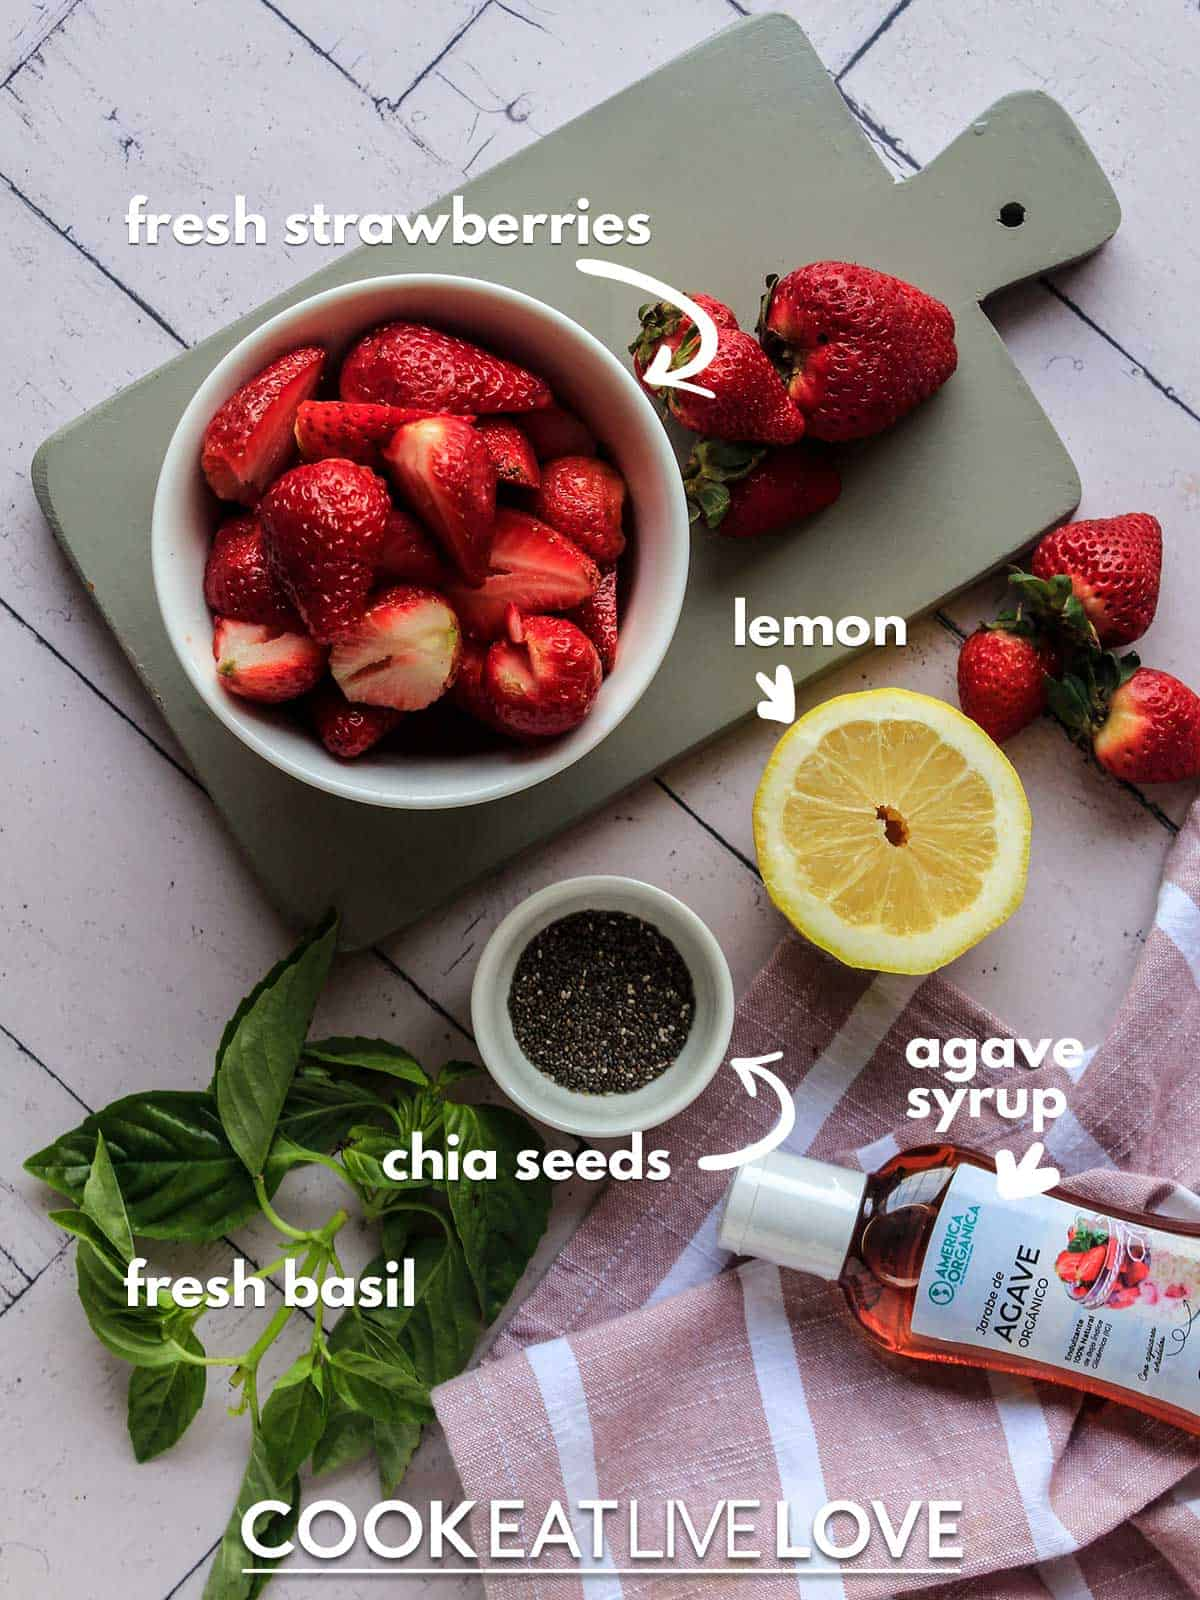 Ingredients for instant pot strawberry jam on the table